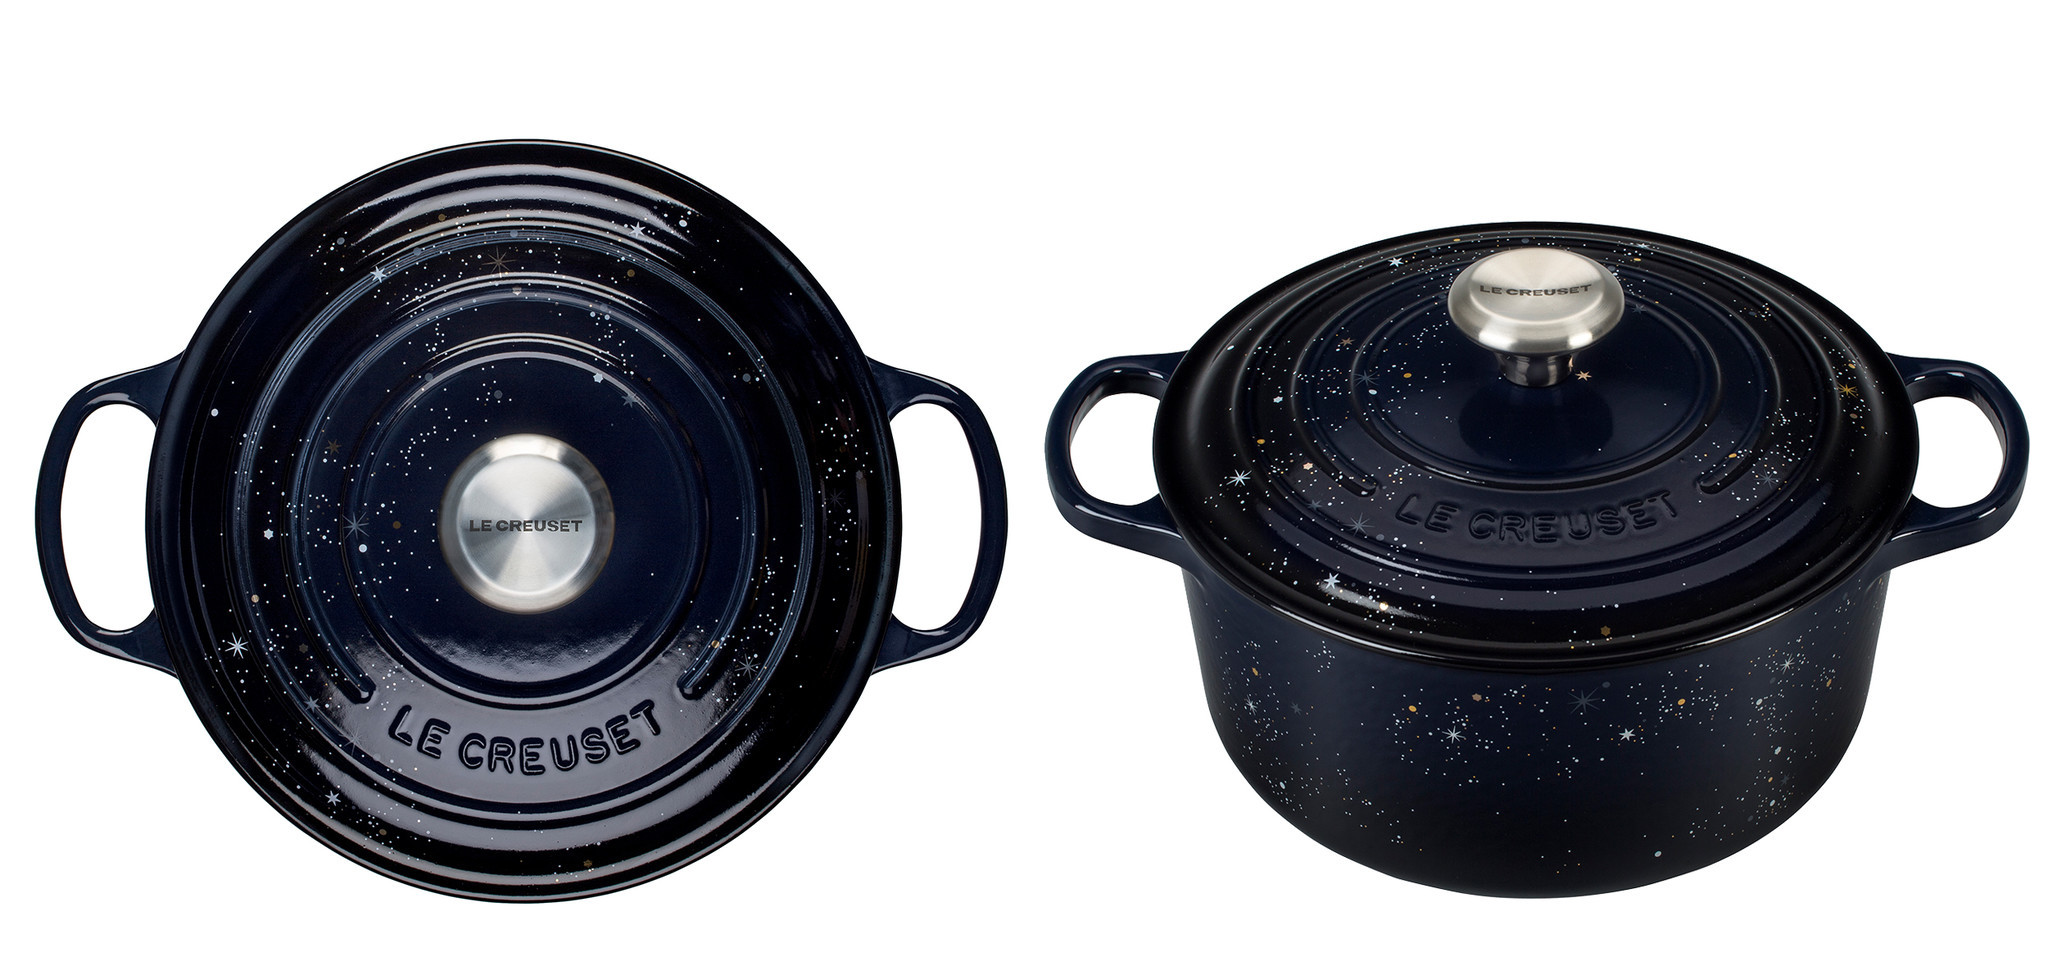 Le Creuset Just Released A New Starry Sky And We Want One Baltimore Sun